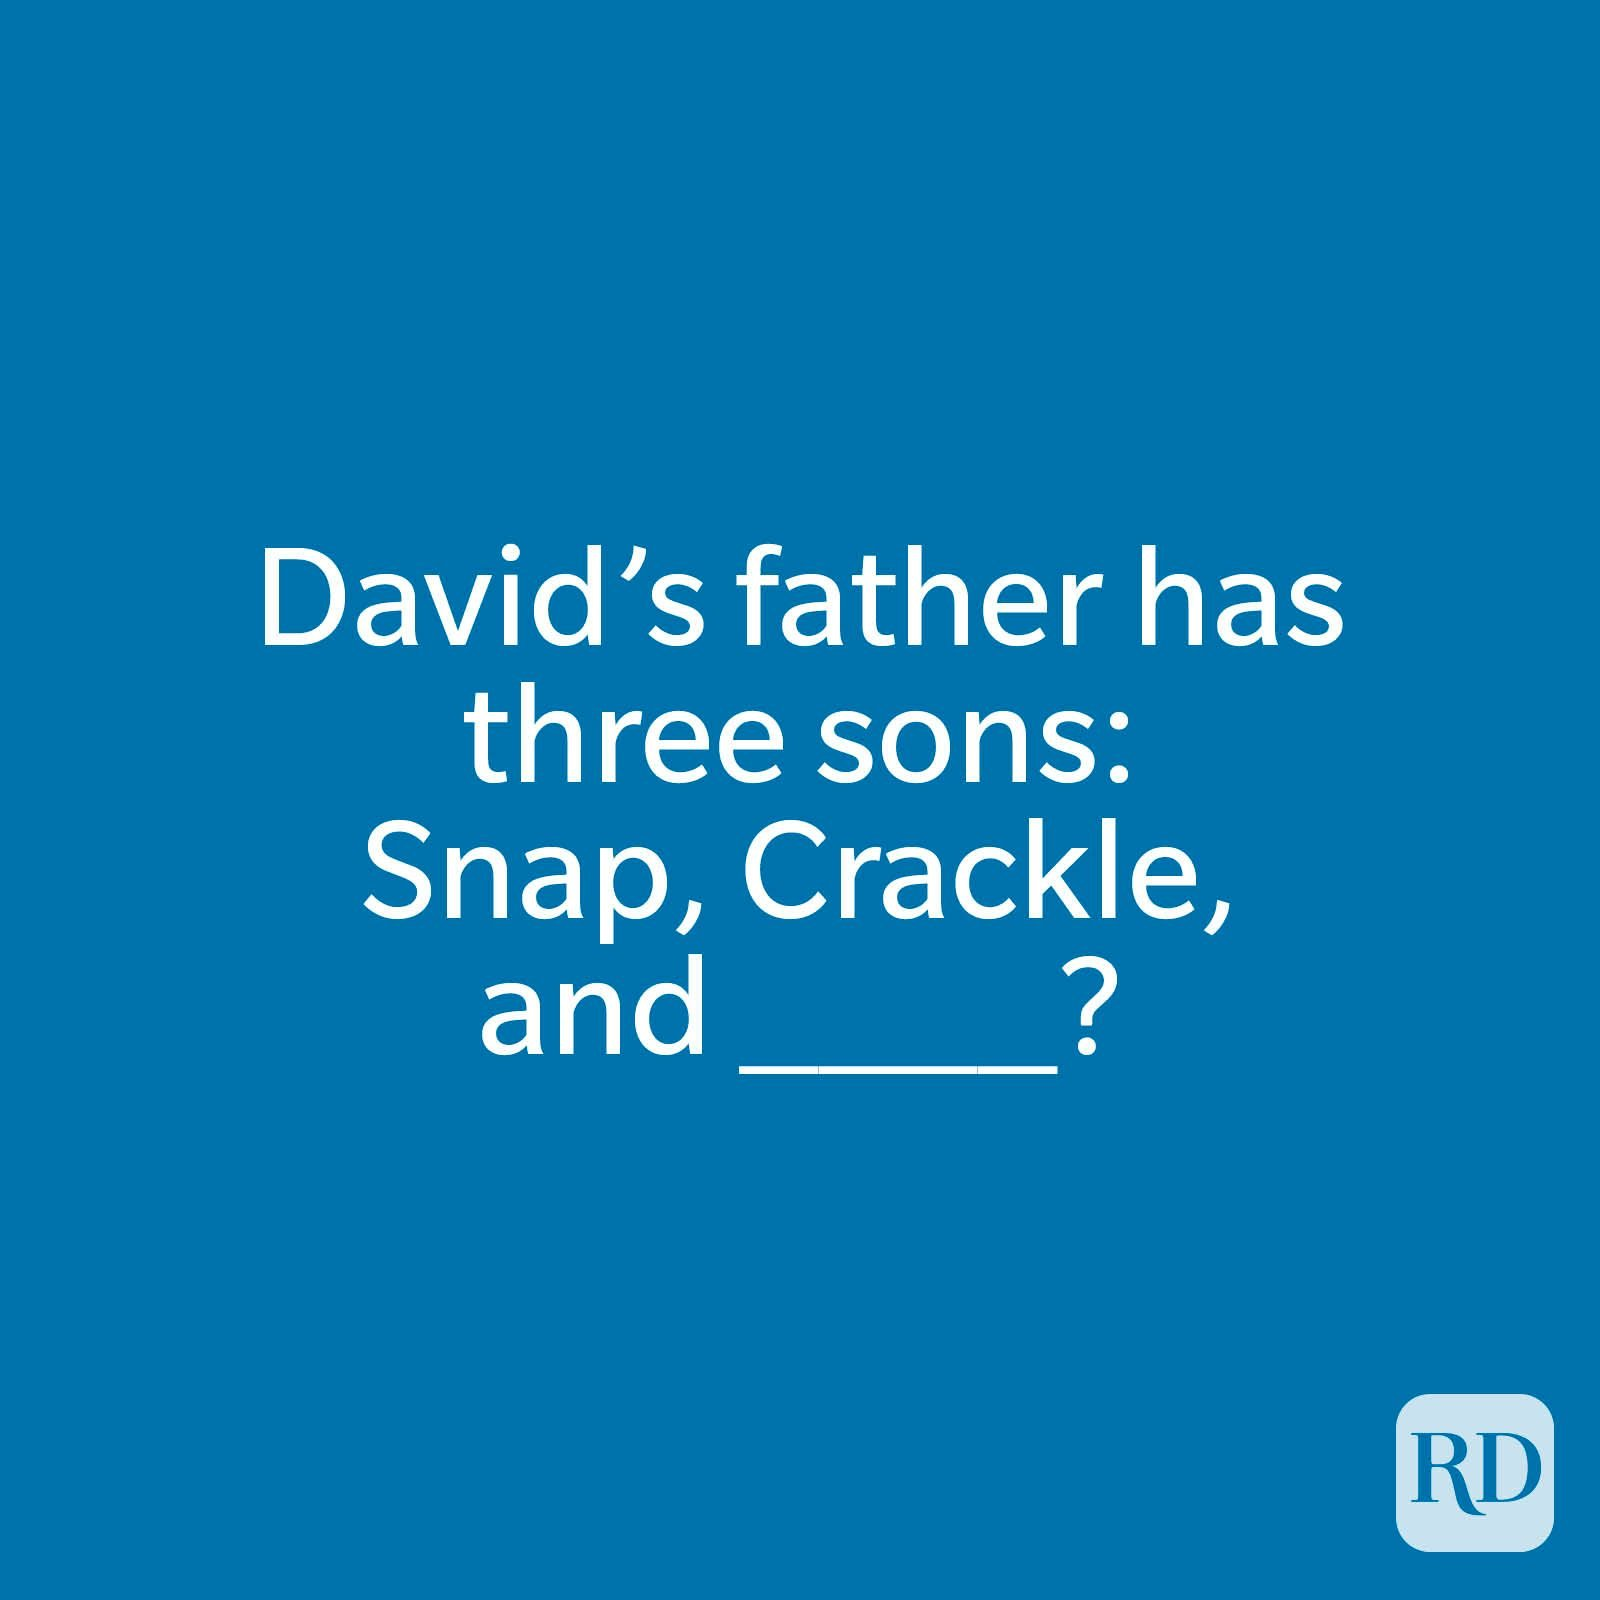 David's father has three sons: Snap, Crackle, and ____?